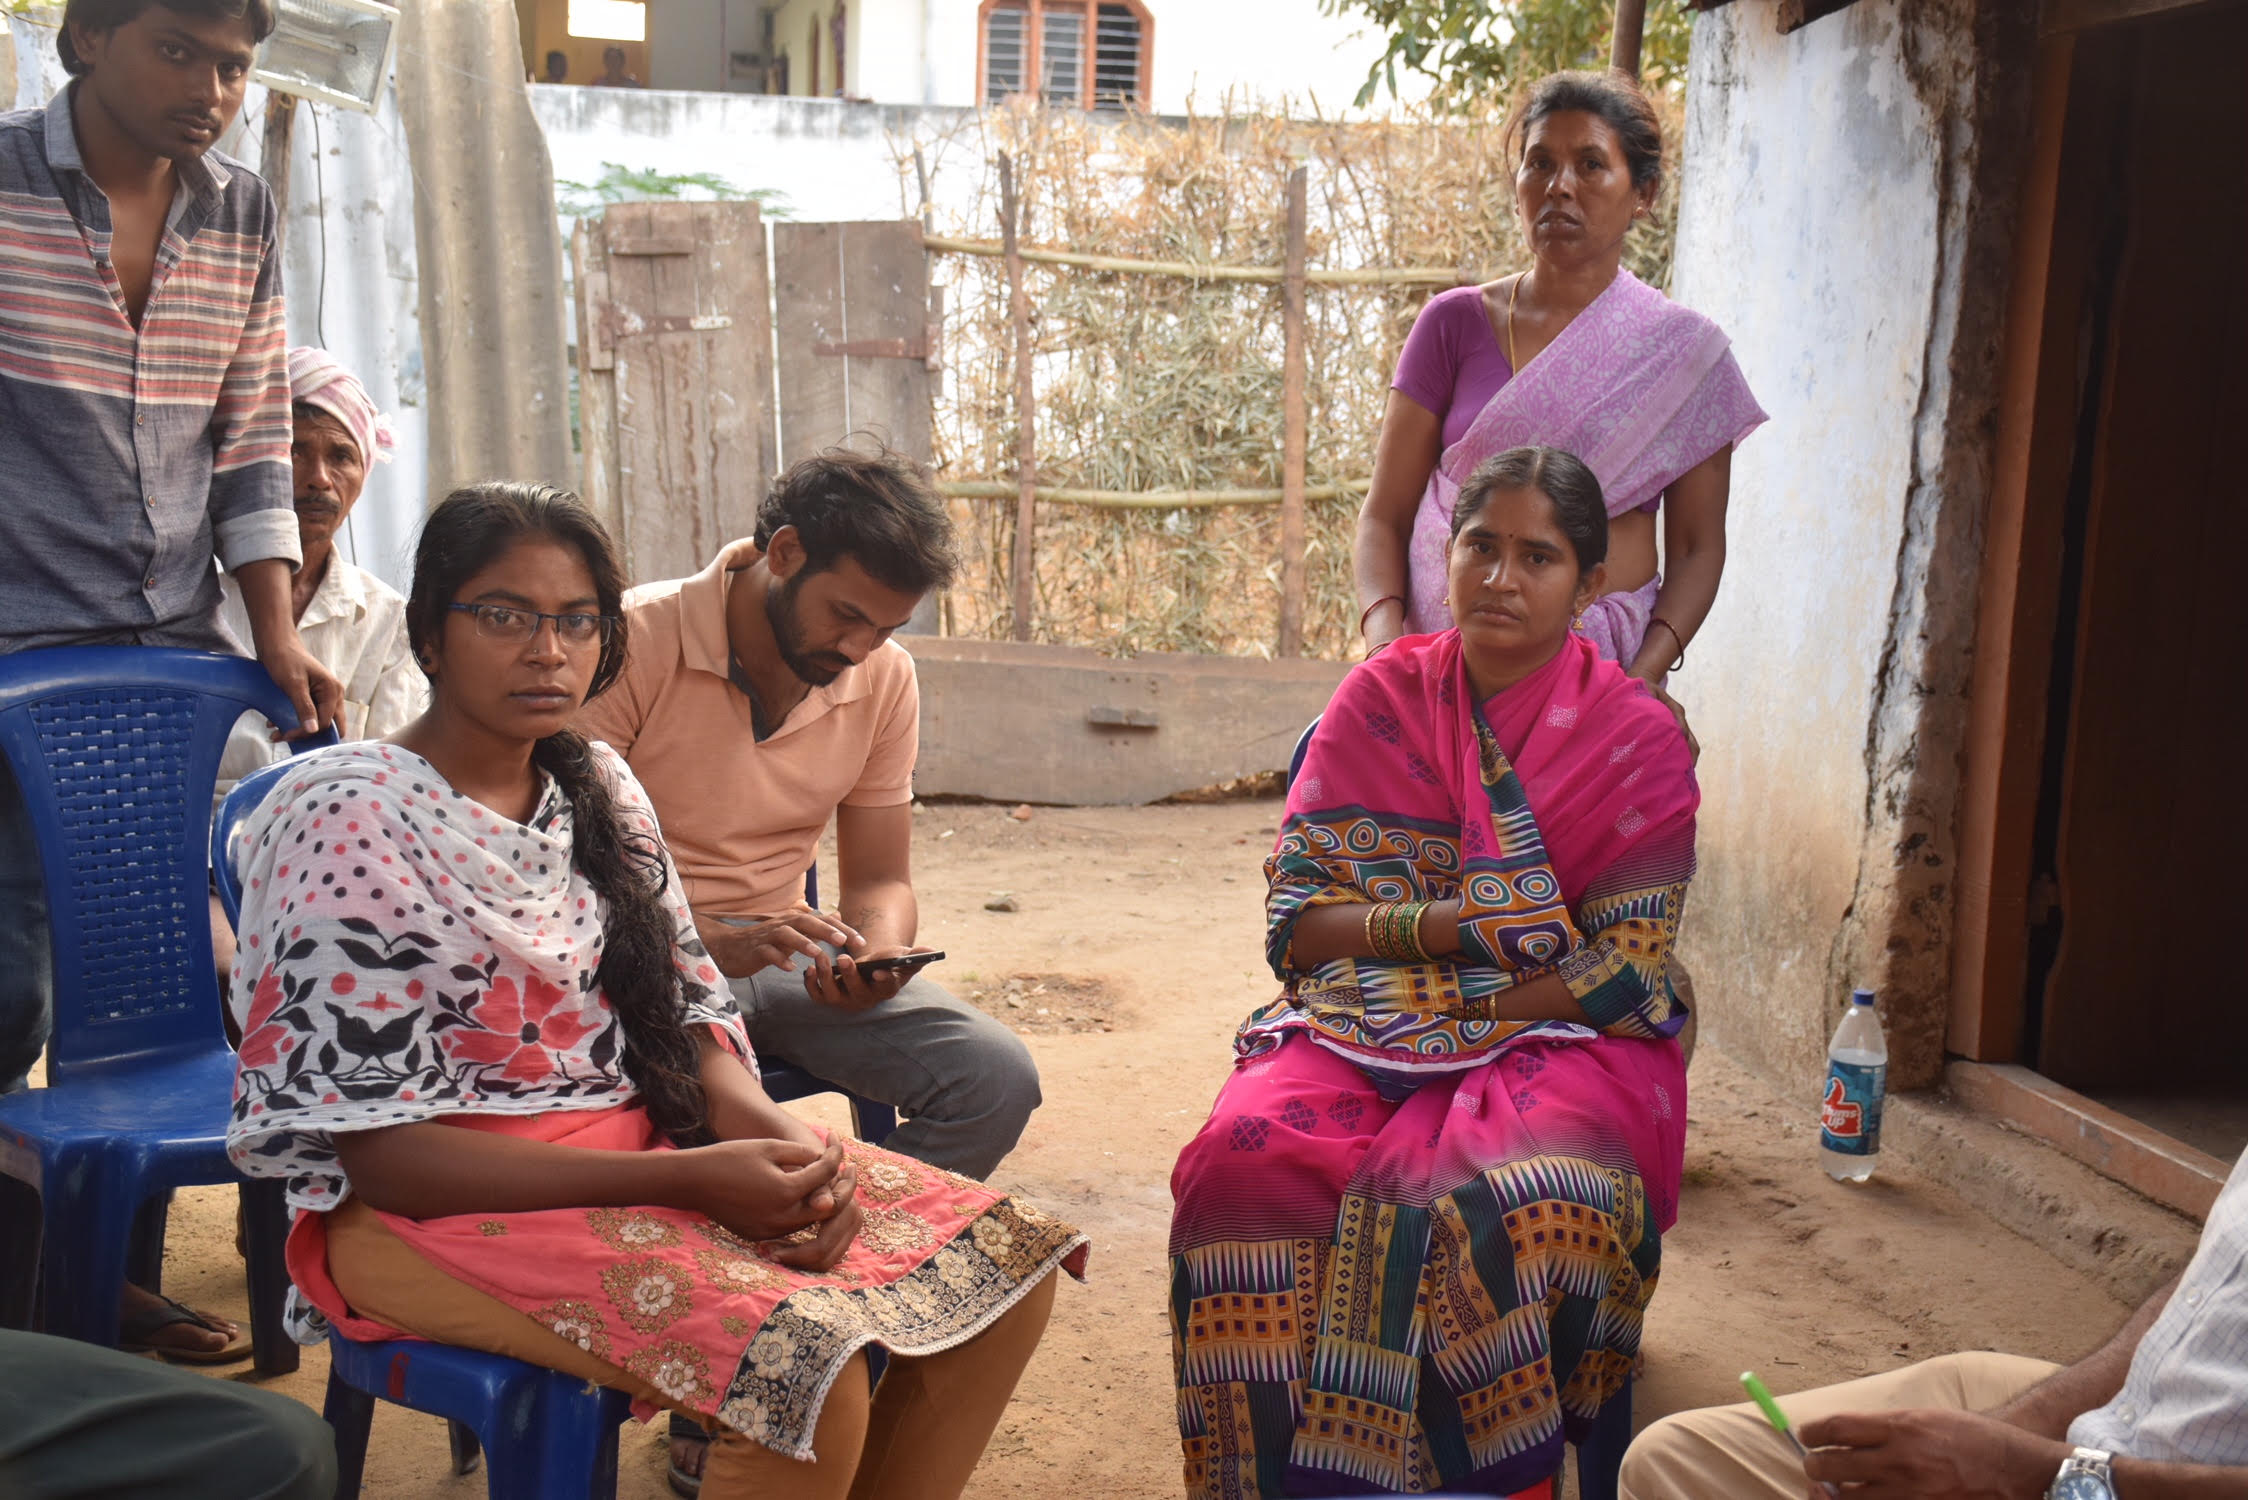 Nunawath Arjun's sister Swati (sitting left) and his aunt Chandini Islawat (sitting on the right) have alleged that he was tortured before he was killed. Credit: Sukanya Shantha